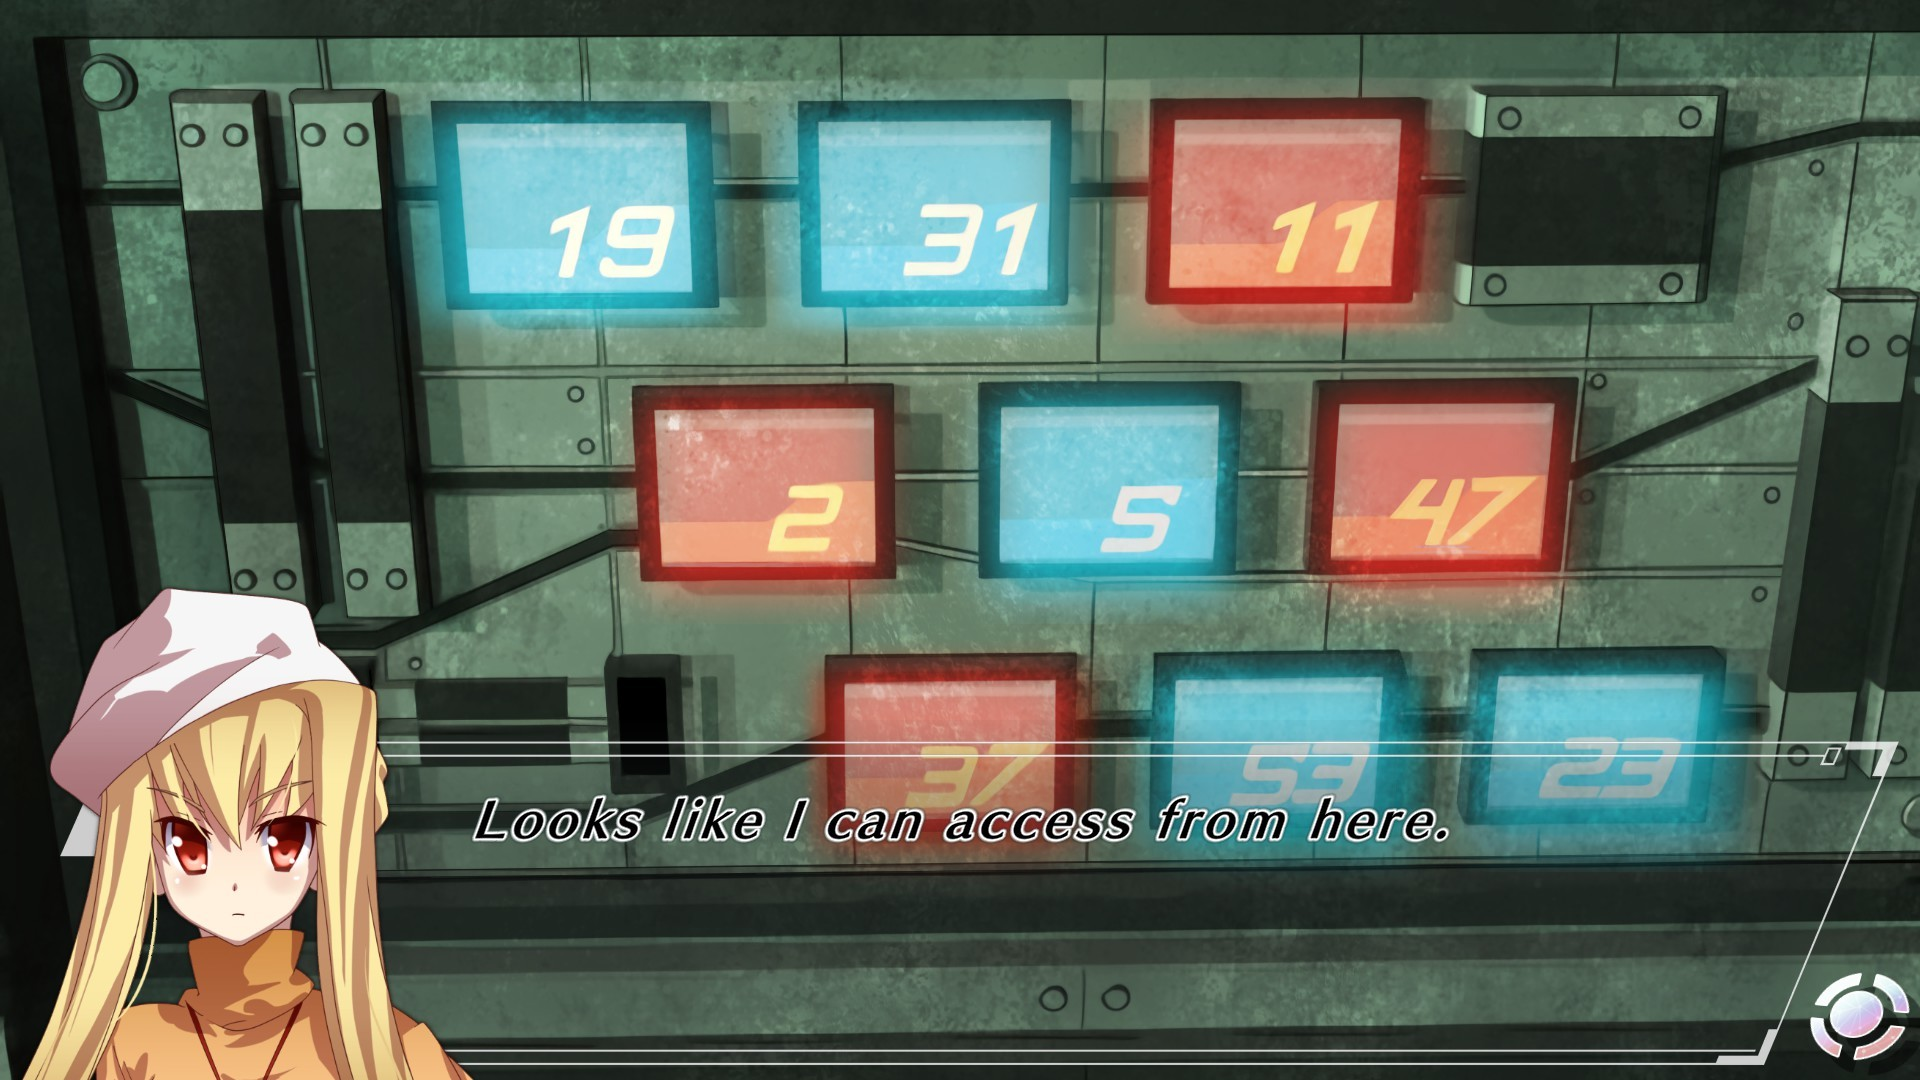 A numerical puzzle presents itself to the player while a protagonist muses over it in Abyss of the Sacrifice.